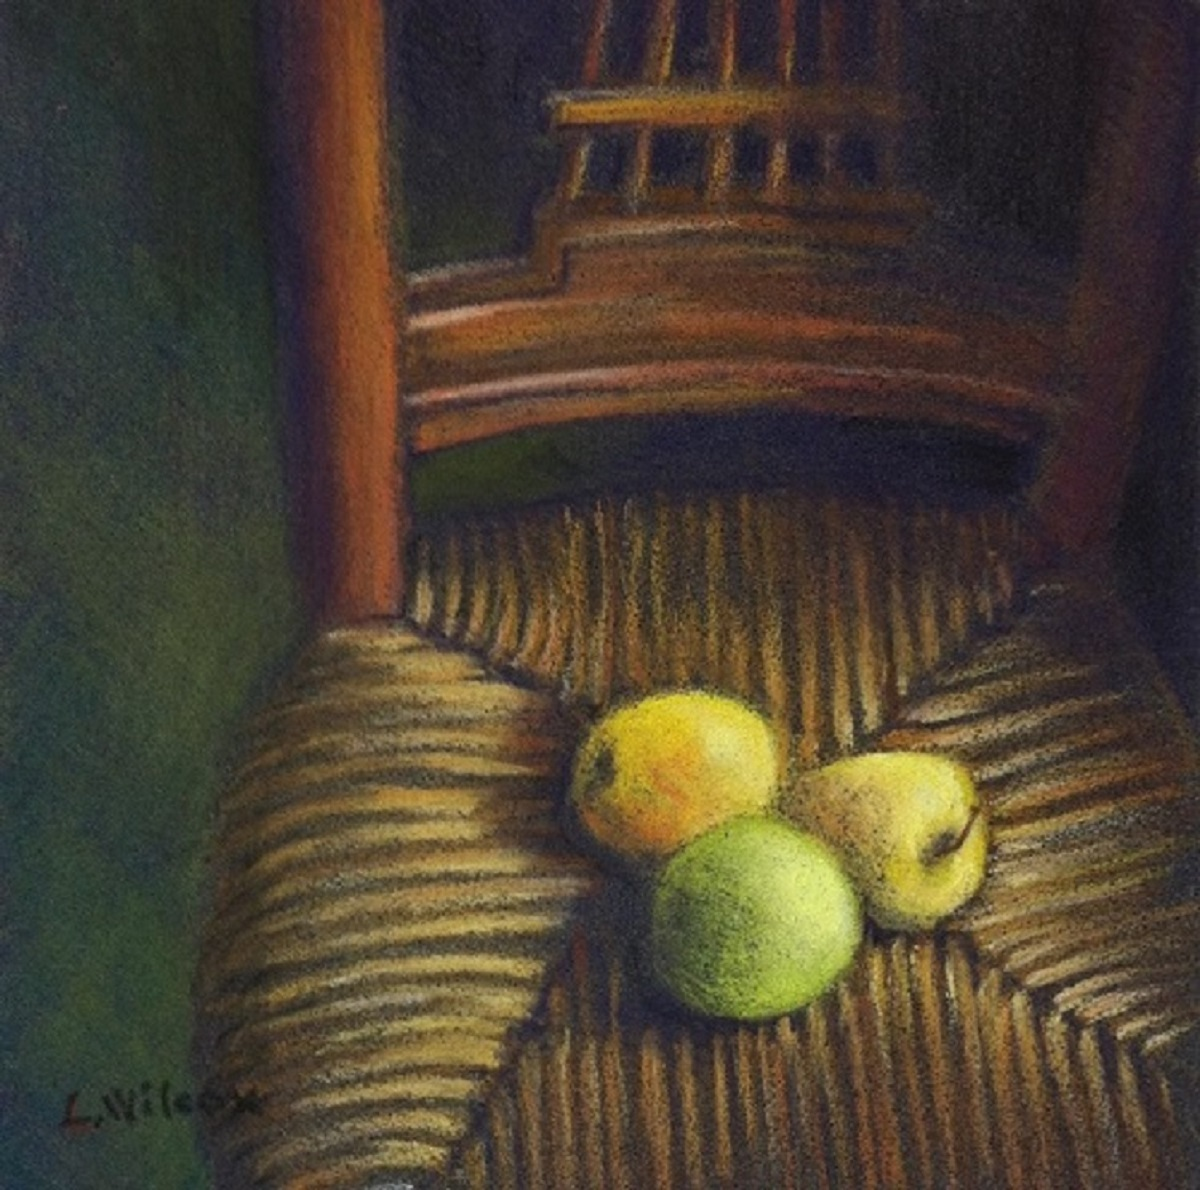 CEZANNE'S CHAIR #4 (large view)